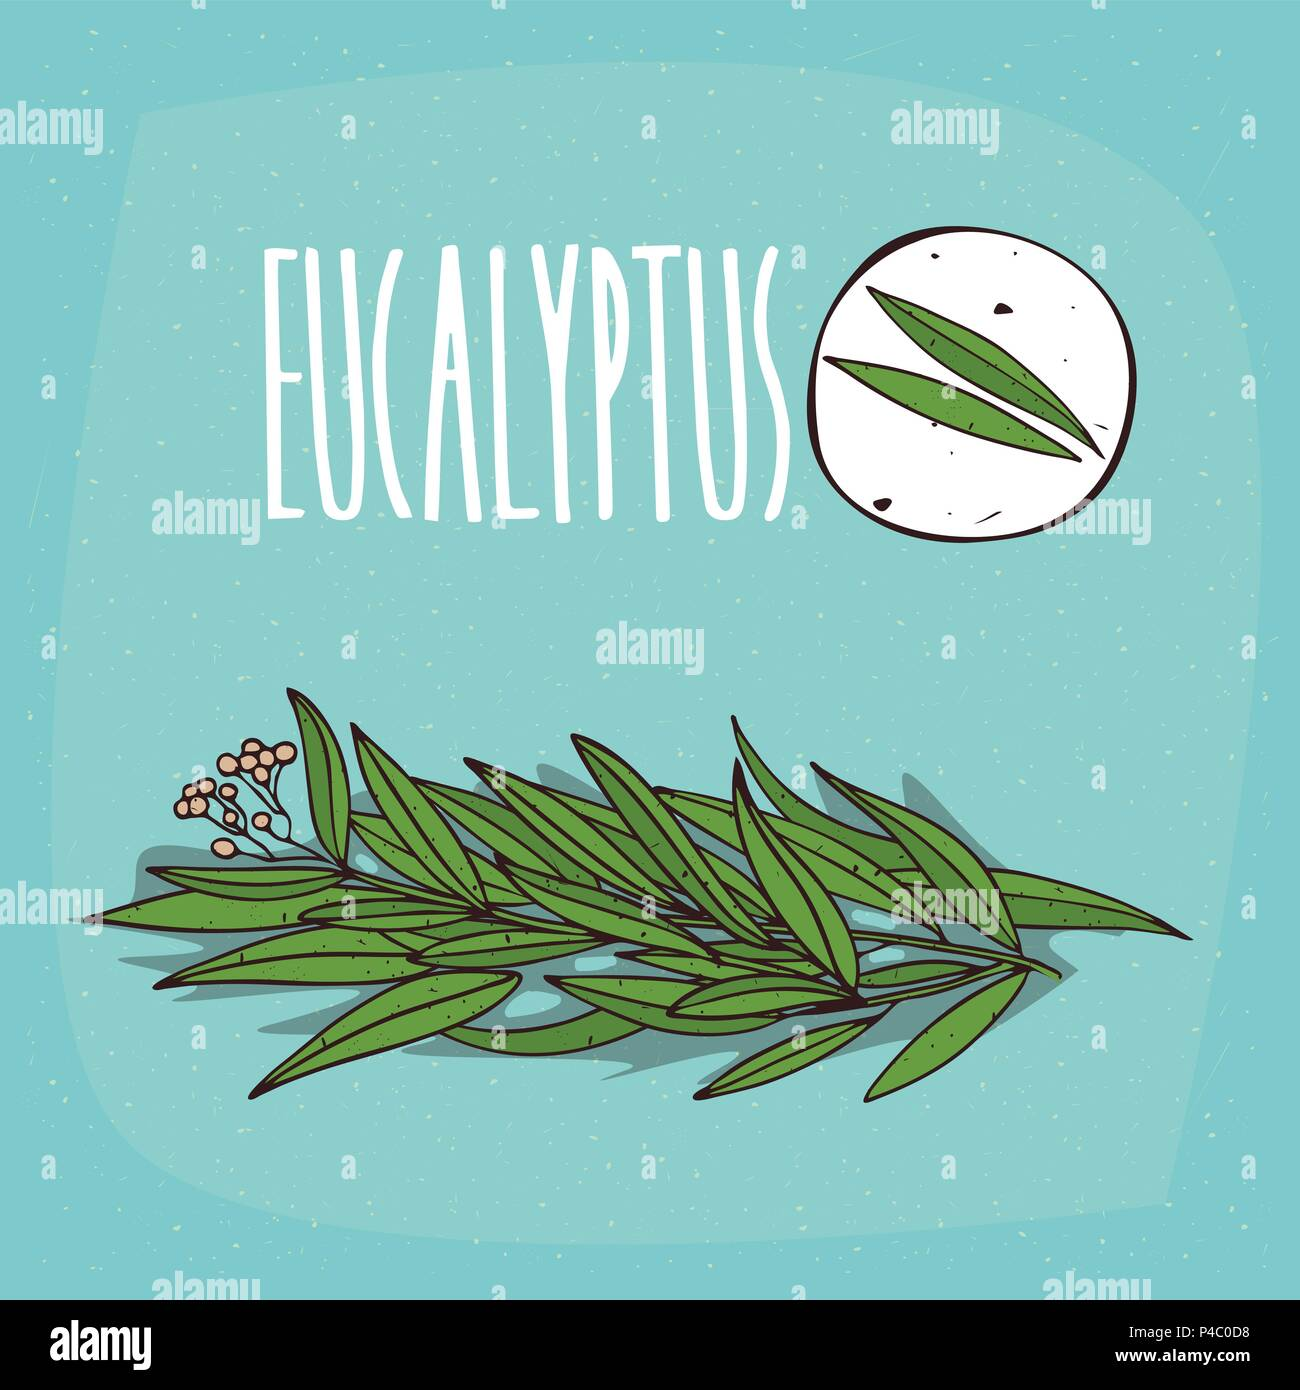 Set of isolated plant Eucalyptus leaves herb with flowers, Simple round icon of Eucalyptus on white background, Lettering inscription Eucalyptus - Stock Vector